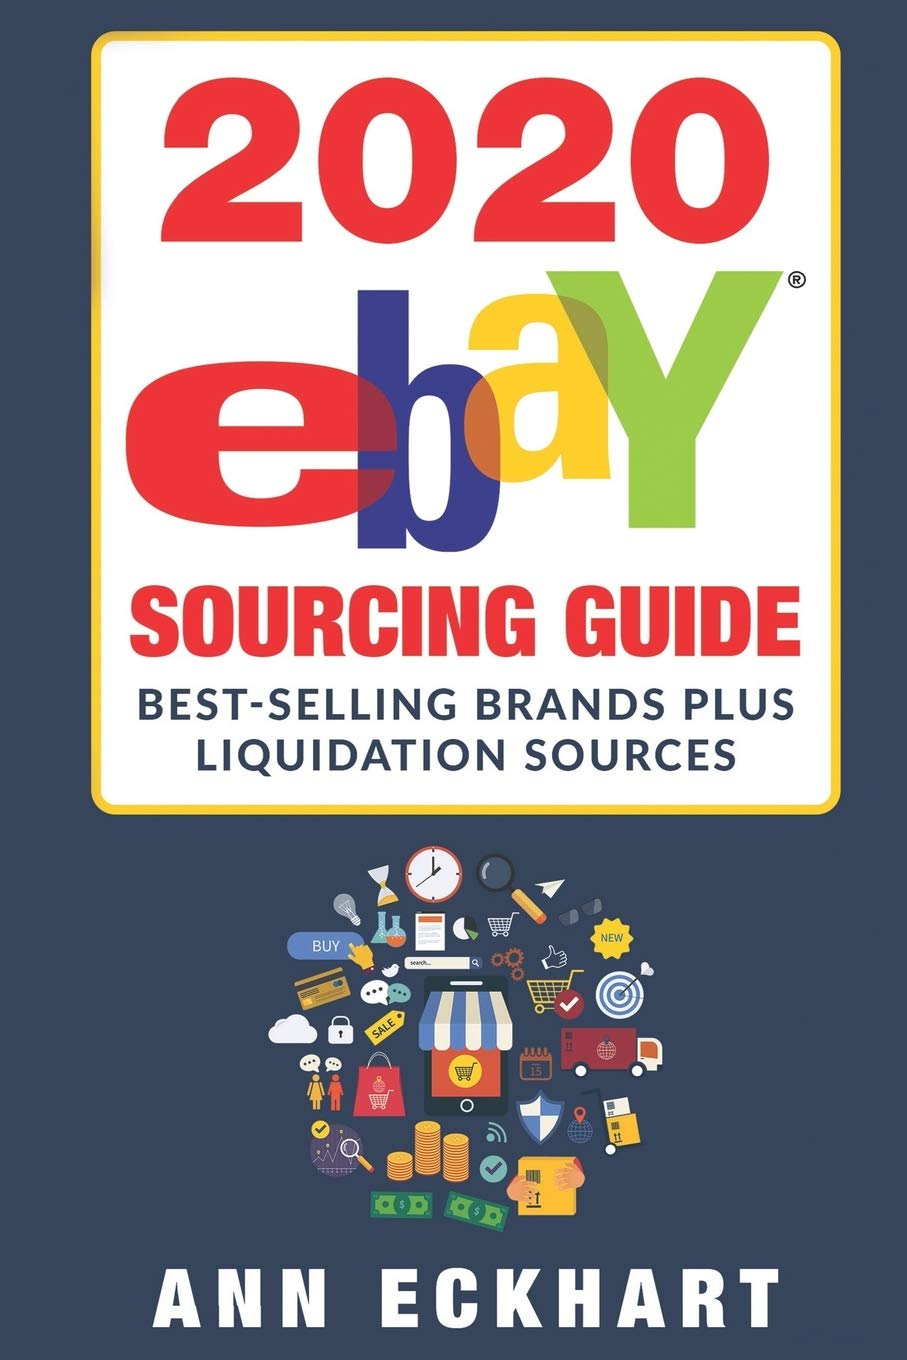 2020 Ebay Sourcing Guide Eckhart Ann 9781675966778 Amazon Com Books